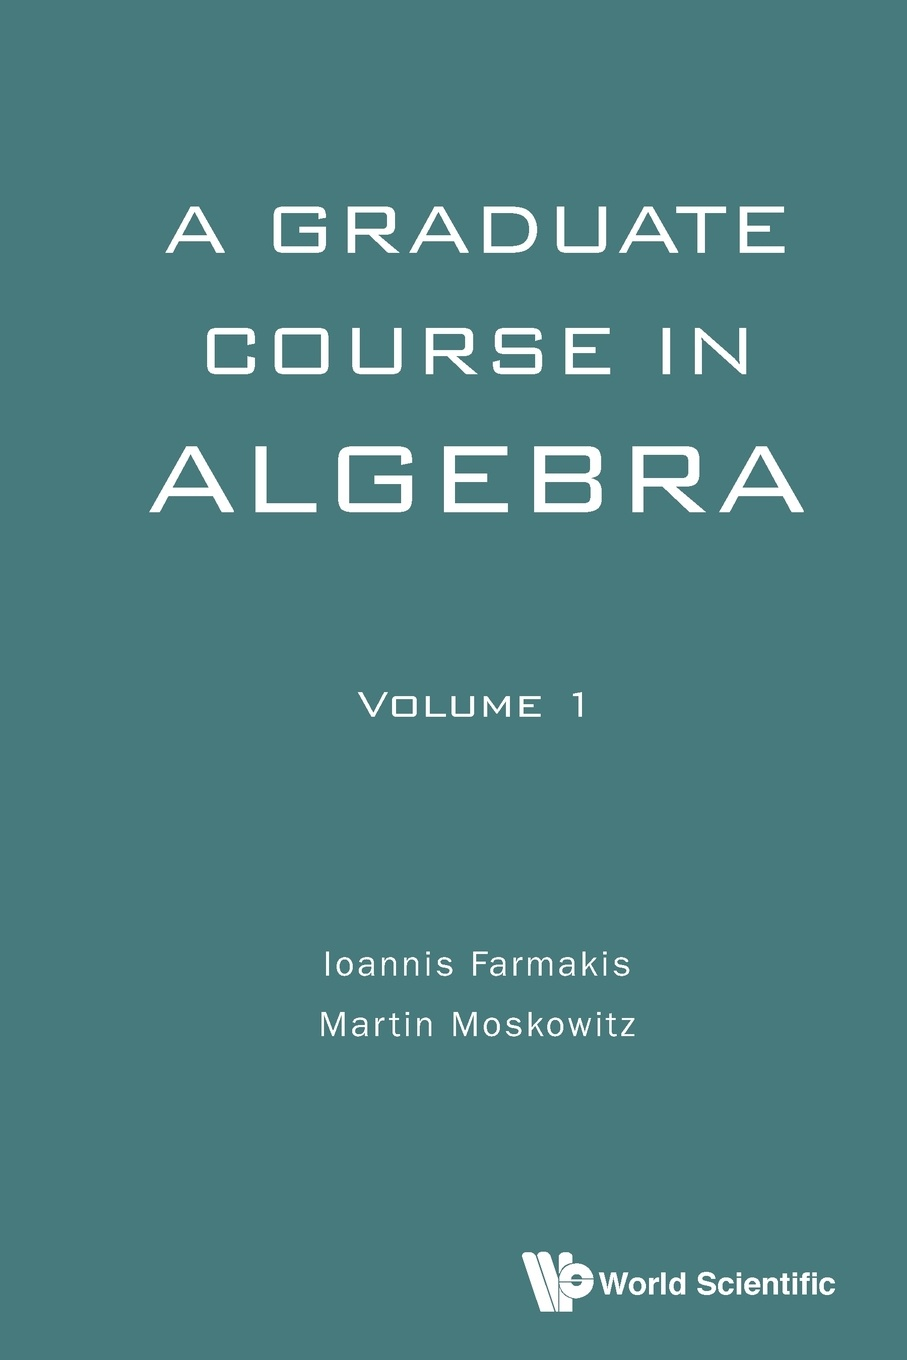 Ioannis Farmakis, Martin Moskowitz A Graduate Course in Algebra - Volume 1 v a goldich b g ziv algebra didactic materials for the 7th grade